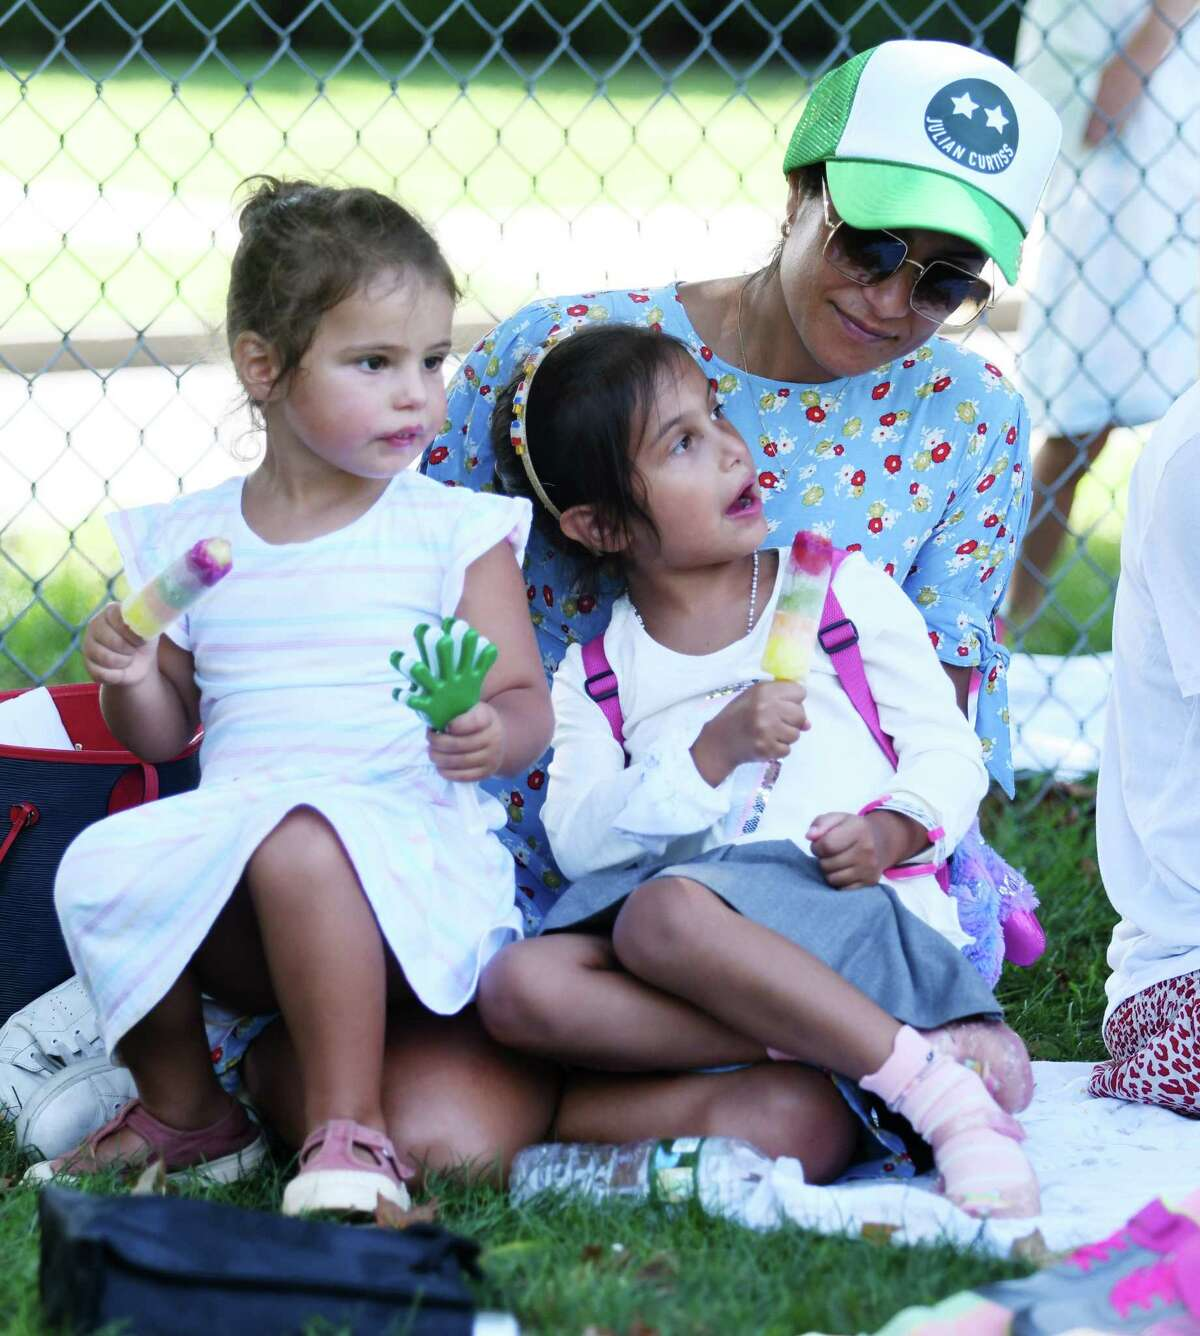 Anthea Rushing relaxes in the shade with her kids Loulou Belle, left, 3, and Tigerlily, entering kindergarten, at the Welcome Back Picnic at Julian Curtiss School in Greenwich, Conn. Tuesday, Aug. 31, 2021. Students and parents enjoyed a picnic and outdoor games the day before the start of the 2021-2022 school year.